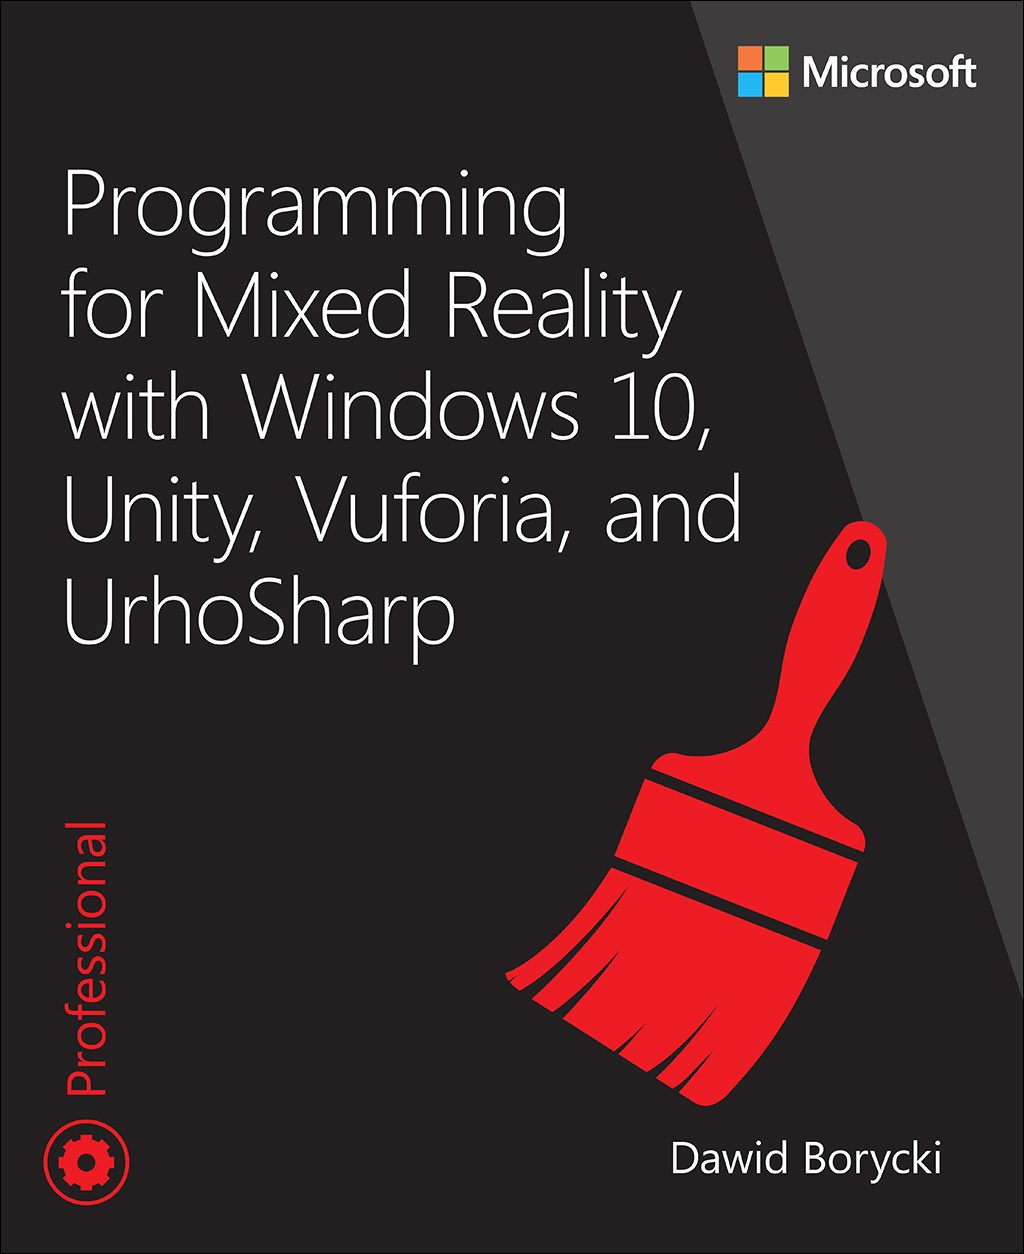 Programming for Mixed Reality with Windows 10, Unity, Vuforia, and UrhoSharp